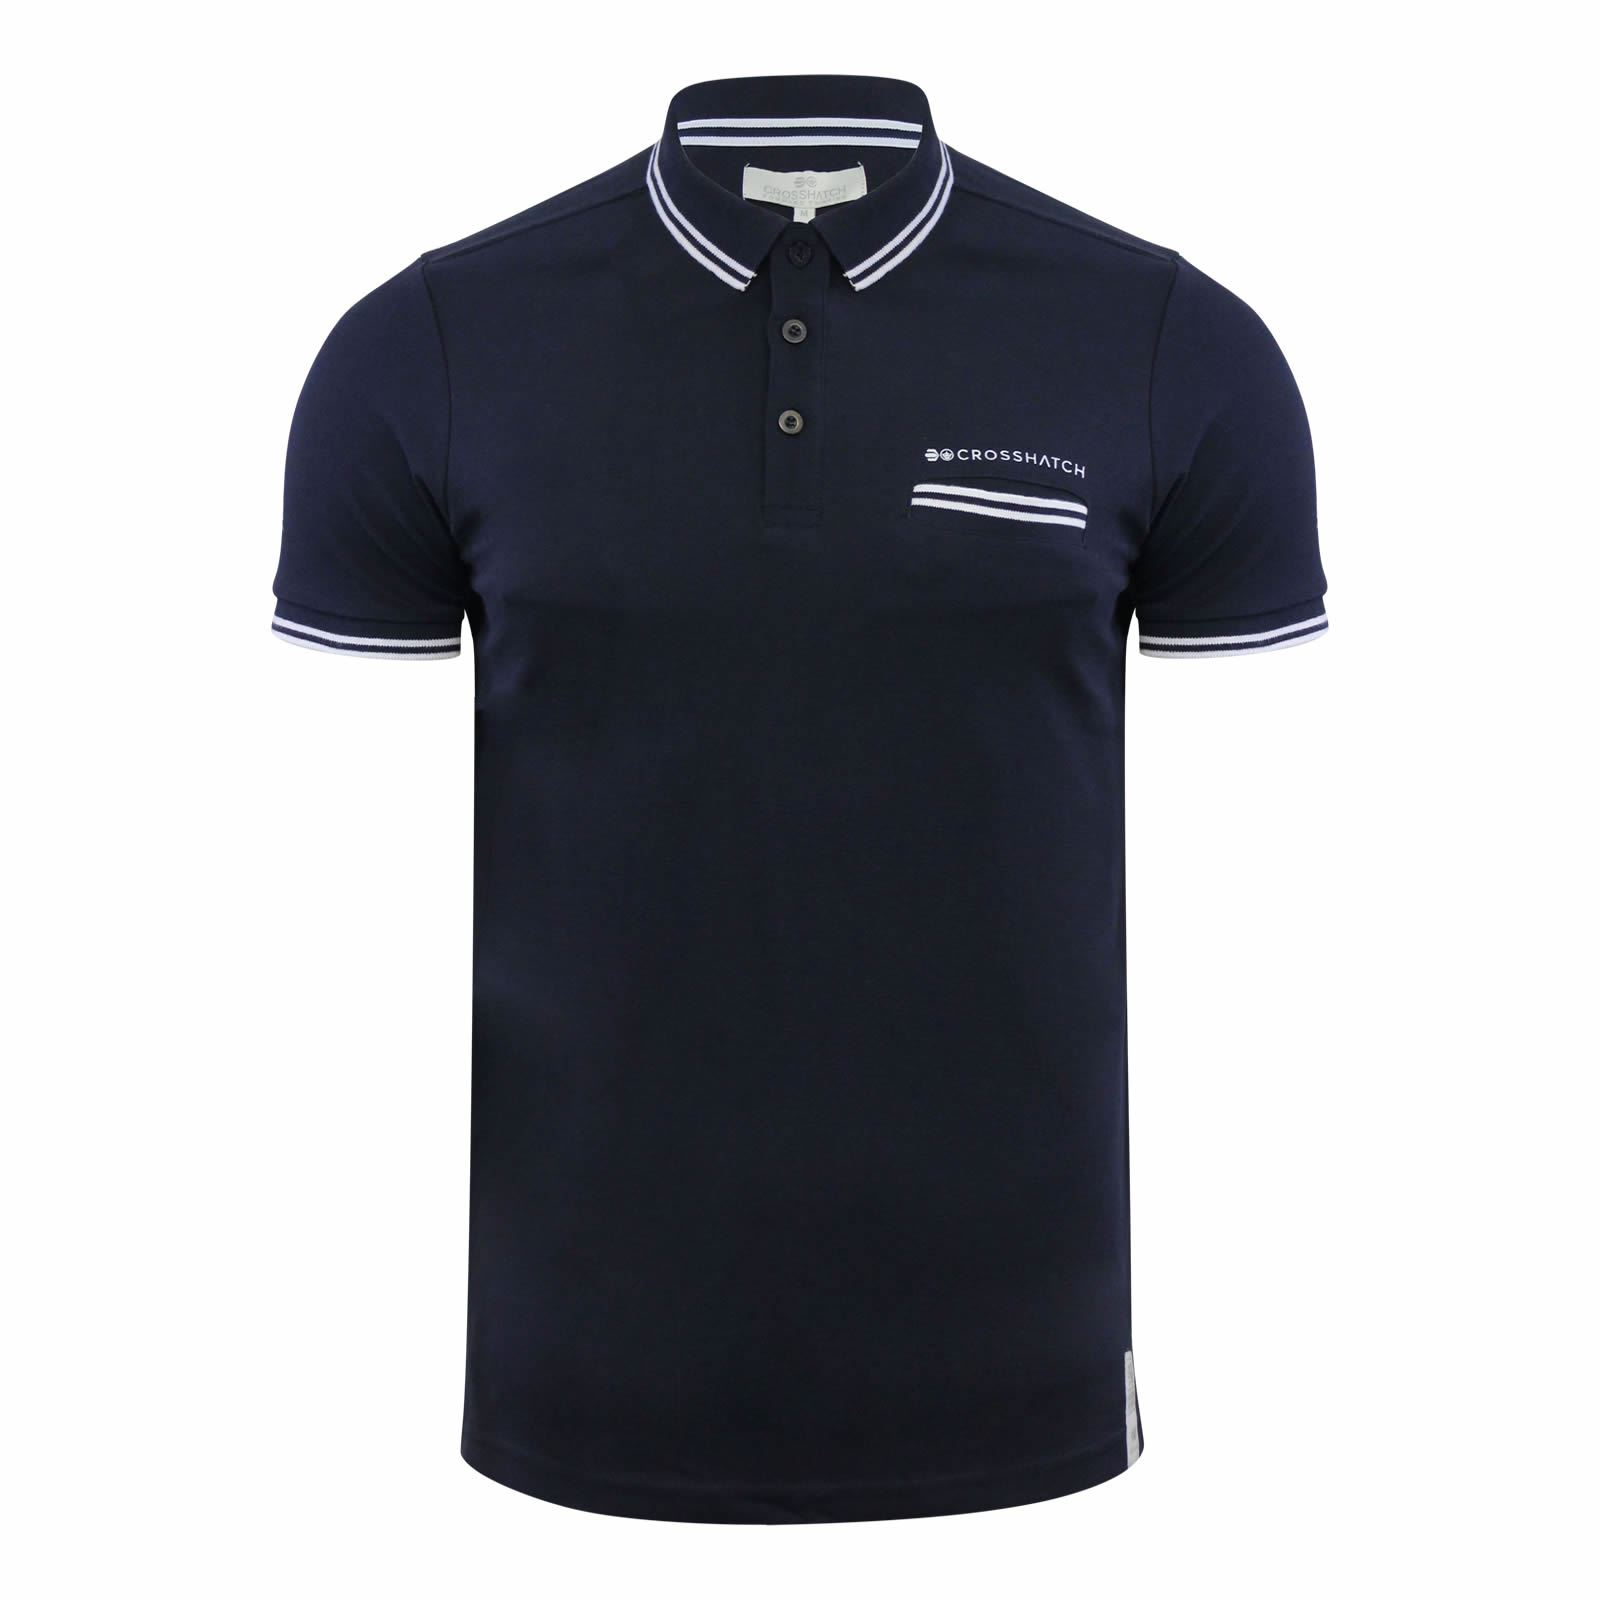 Crosshatch-Mens-Polo-T-Shirt-Pique-Polo-Cotton-Collared-Short-Sleeve-T-Shirt thumbnail 62